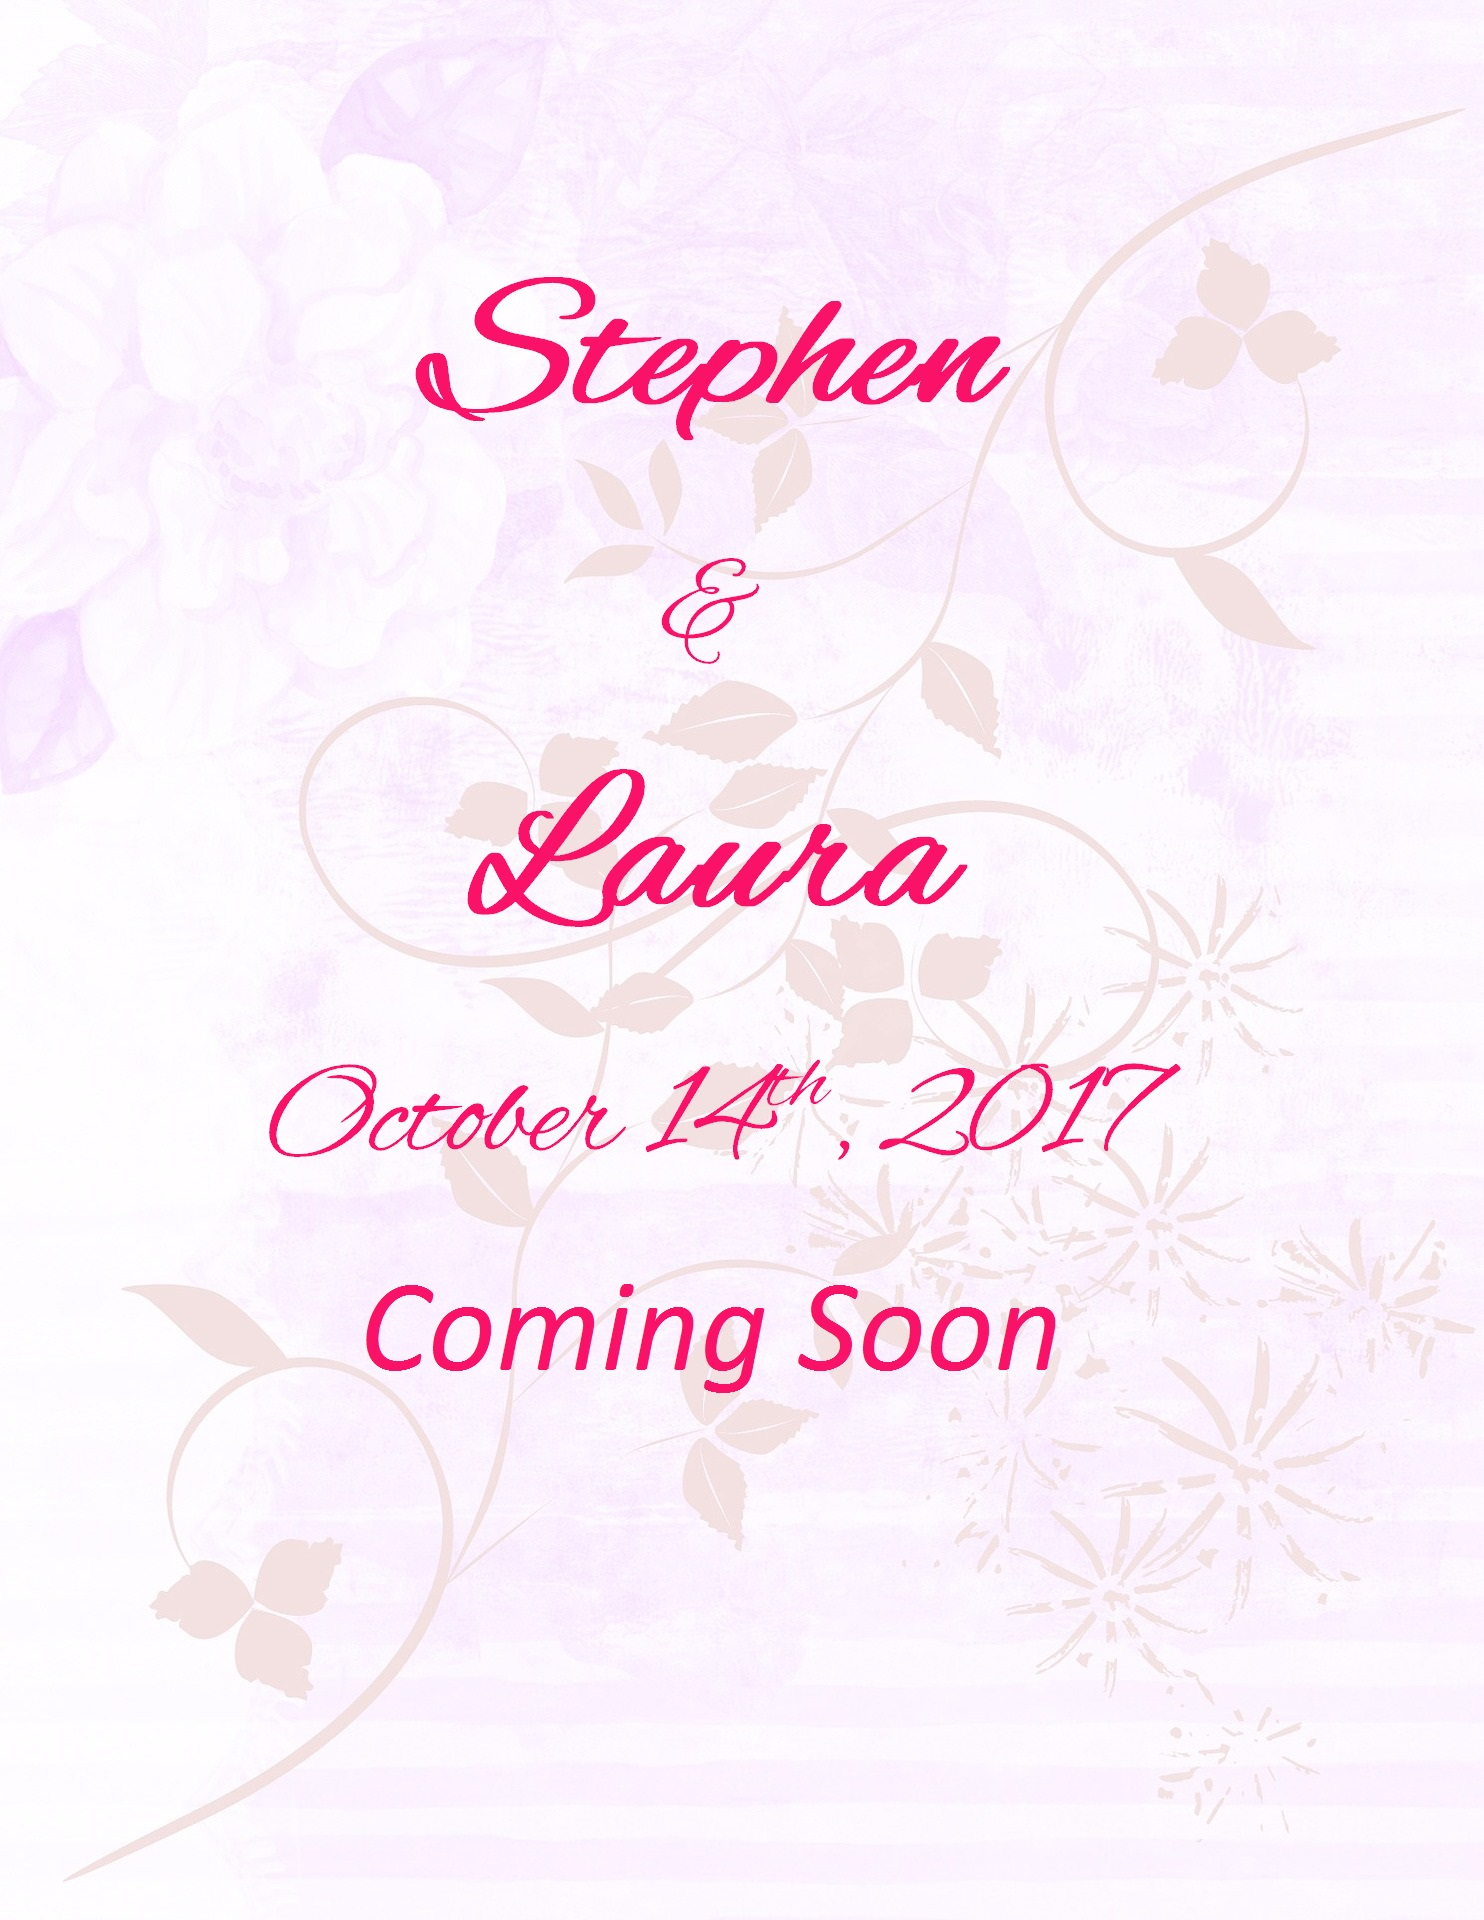 stephen and laura